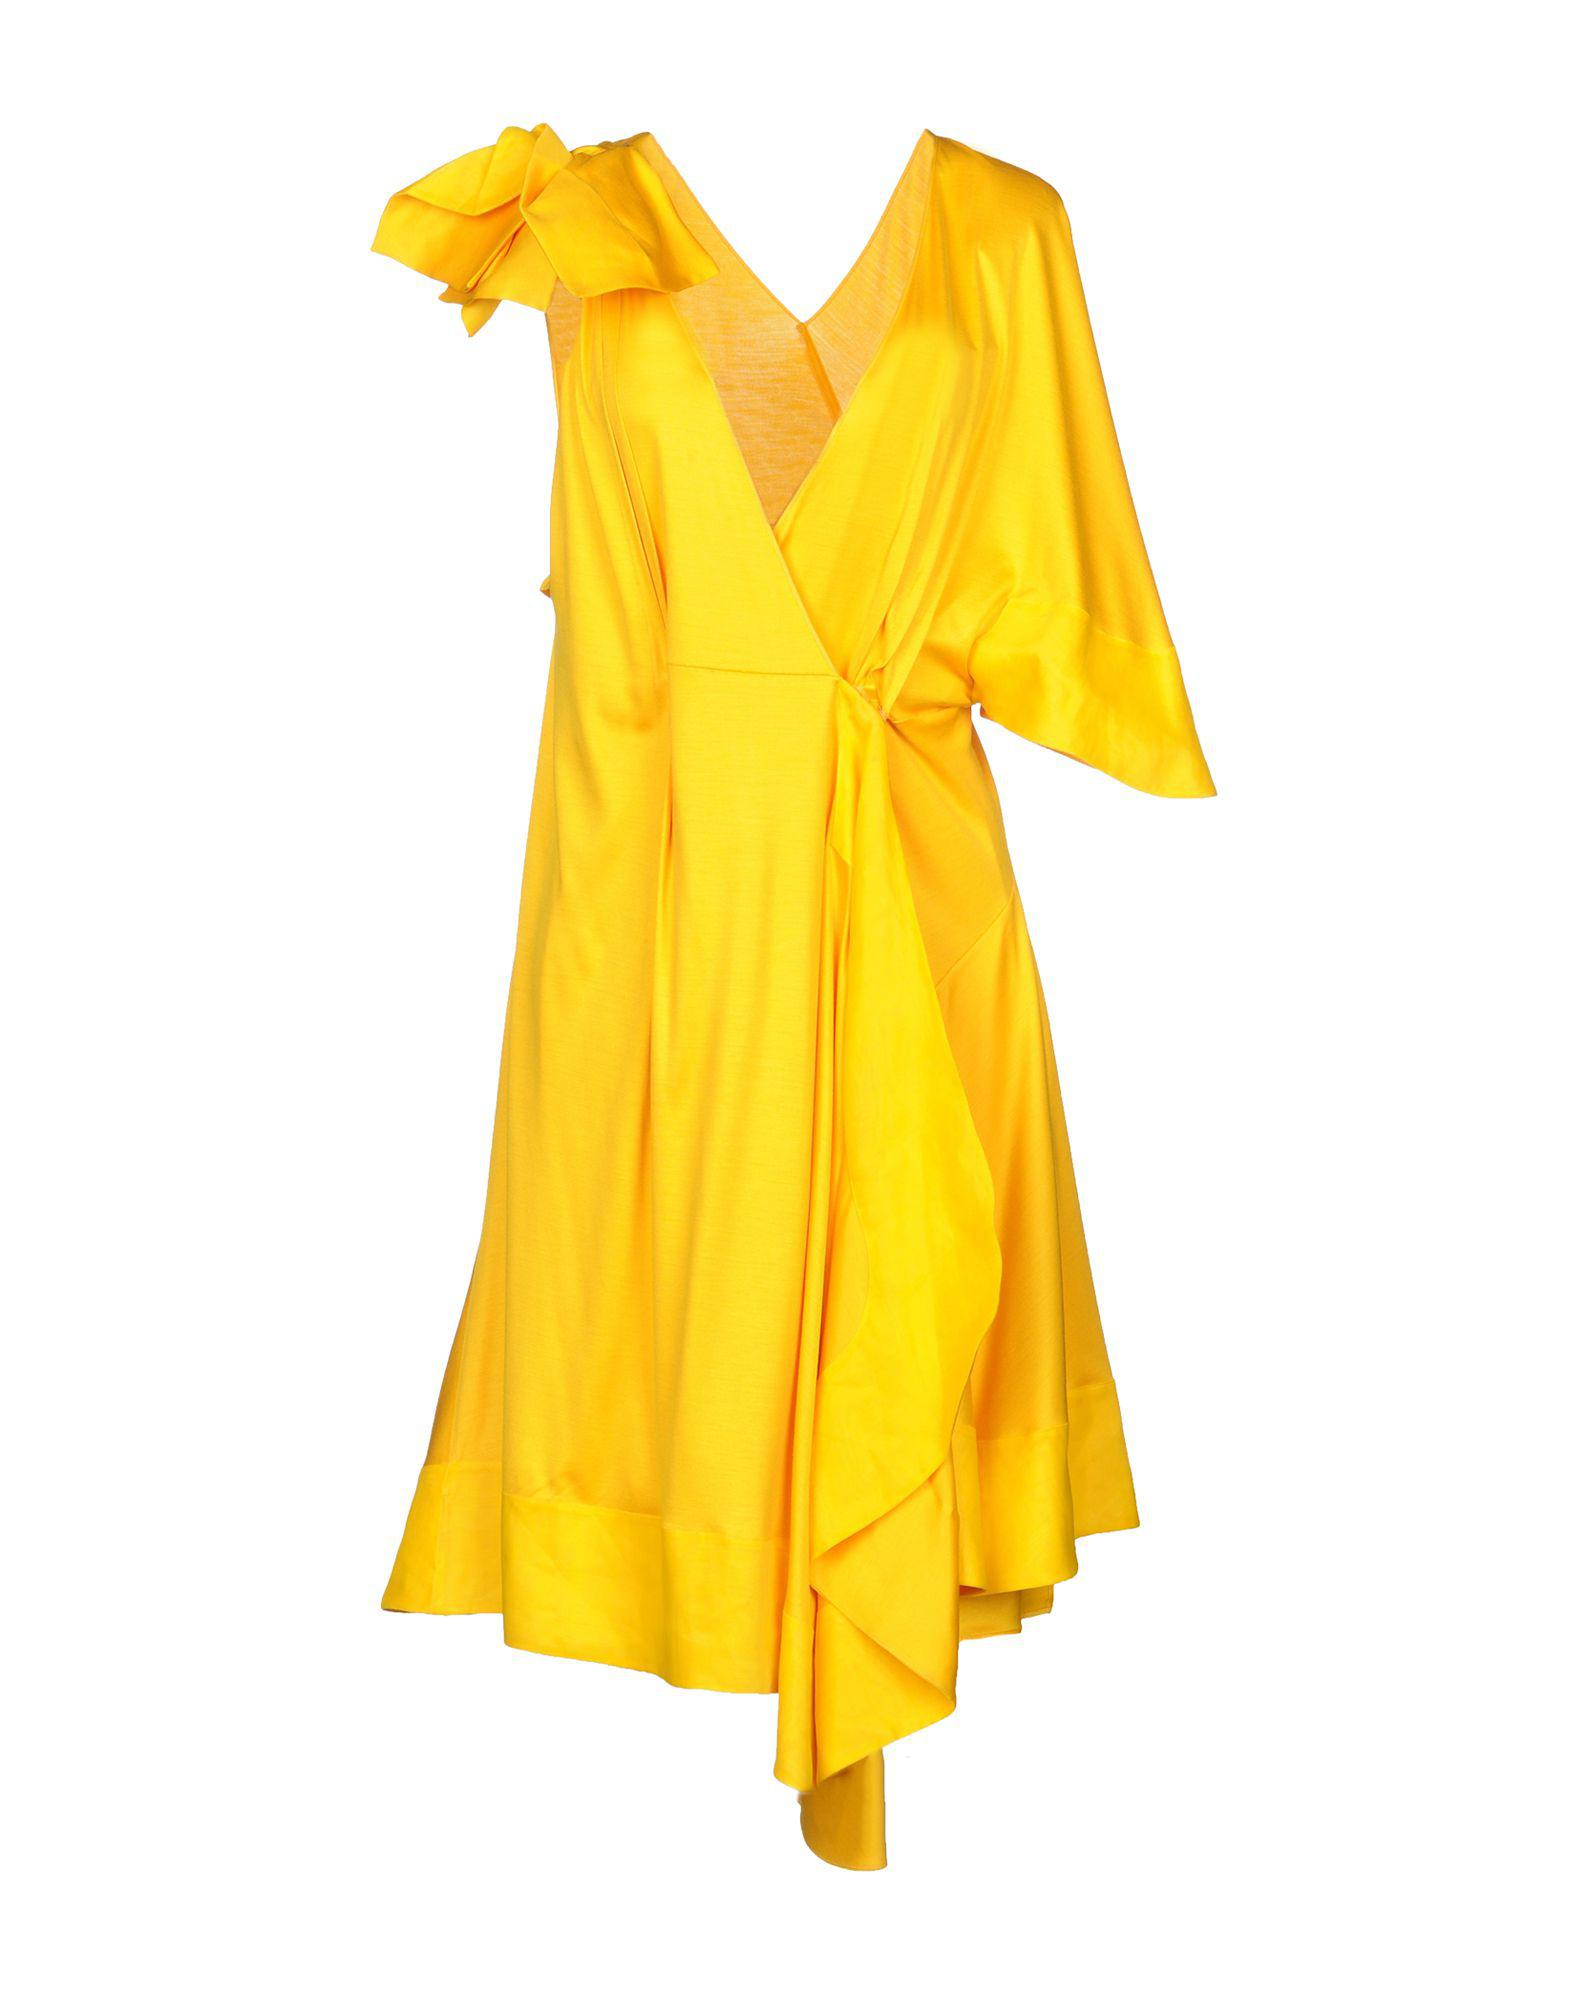 shortsleeved button dress - Yellow & Orange Sonia Rykiel The Cheapest Online Sale Online Get To Buy Cheap Online Sale Professional Get Authentic w36ThlZ